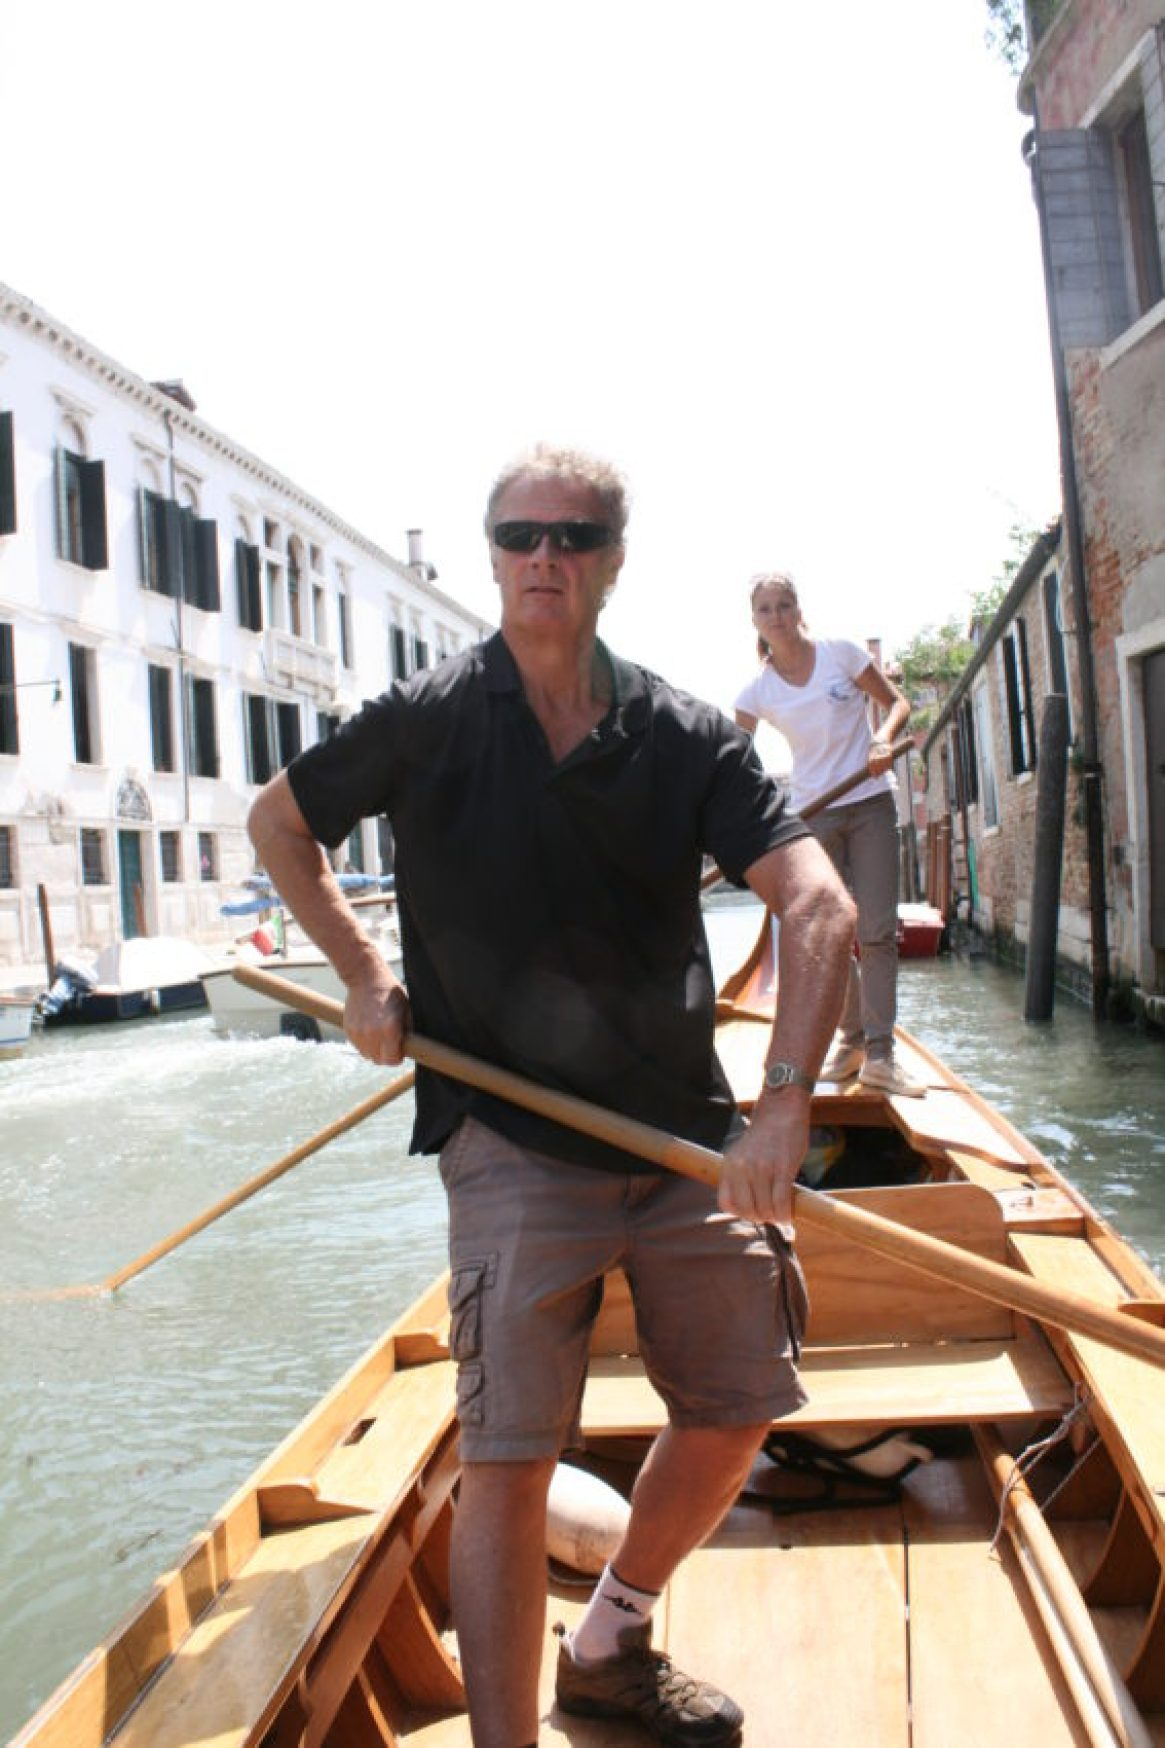 Rowing a canoe in Venice is not nearly as easy as people make it look which I don't.